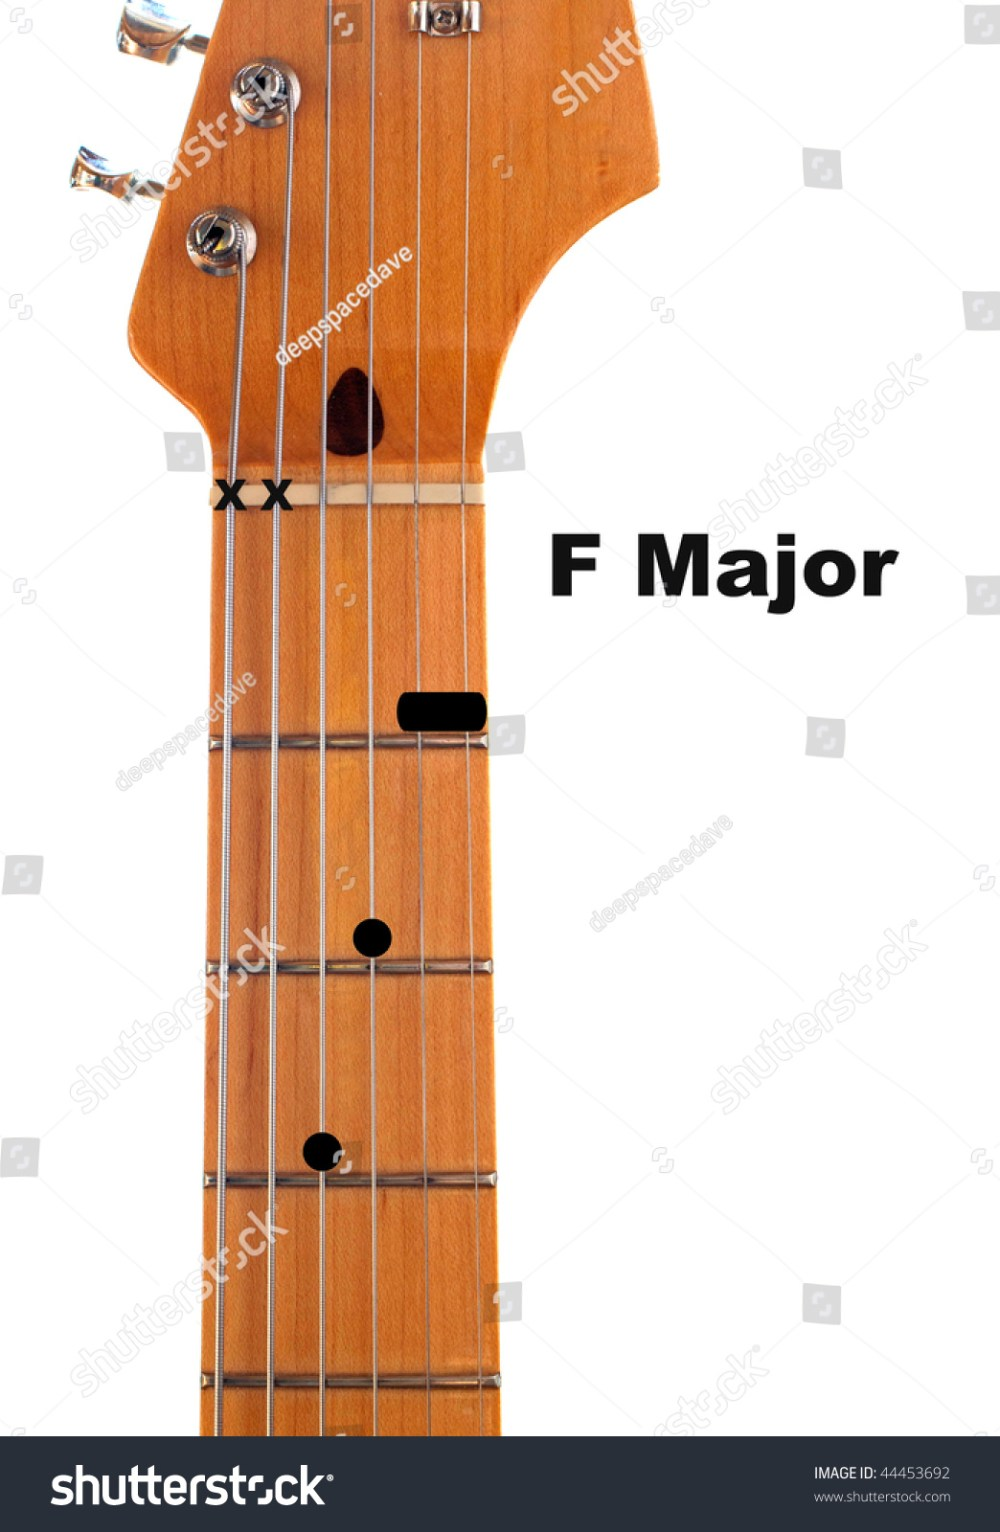 medium resolution of diagram of how to finger an f major guitar chord